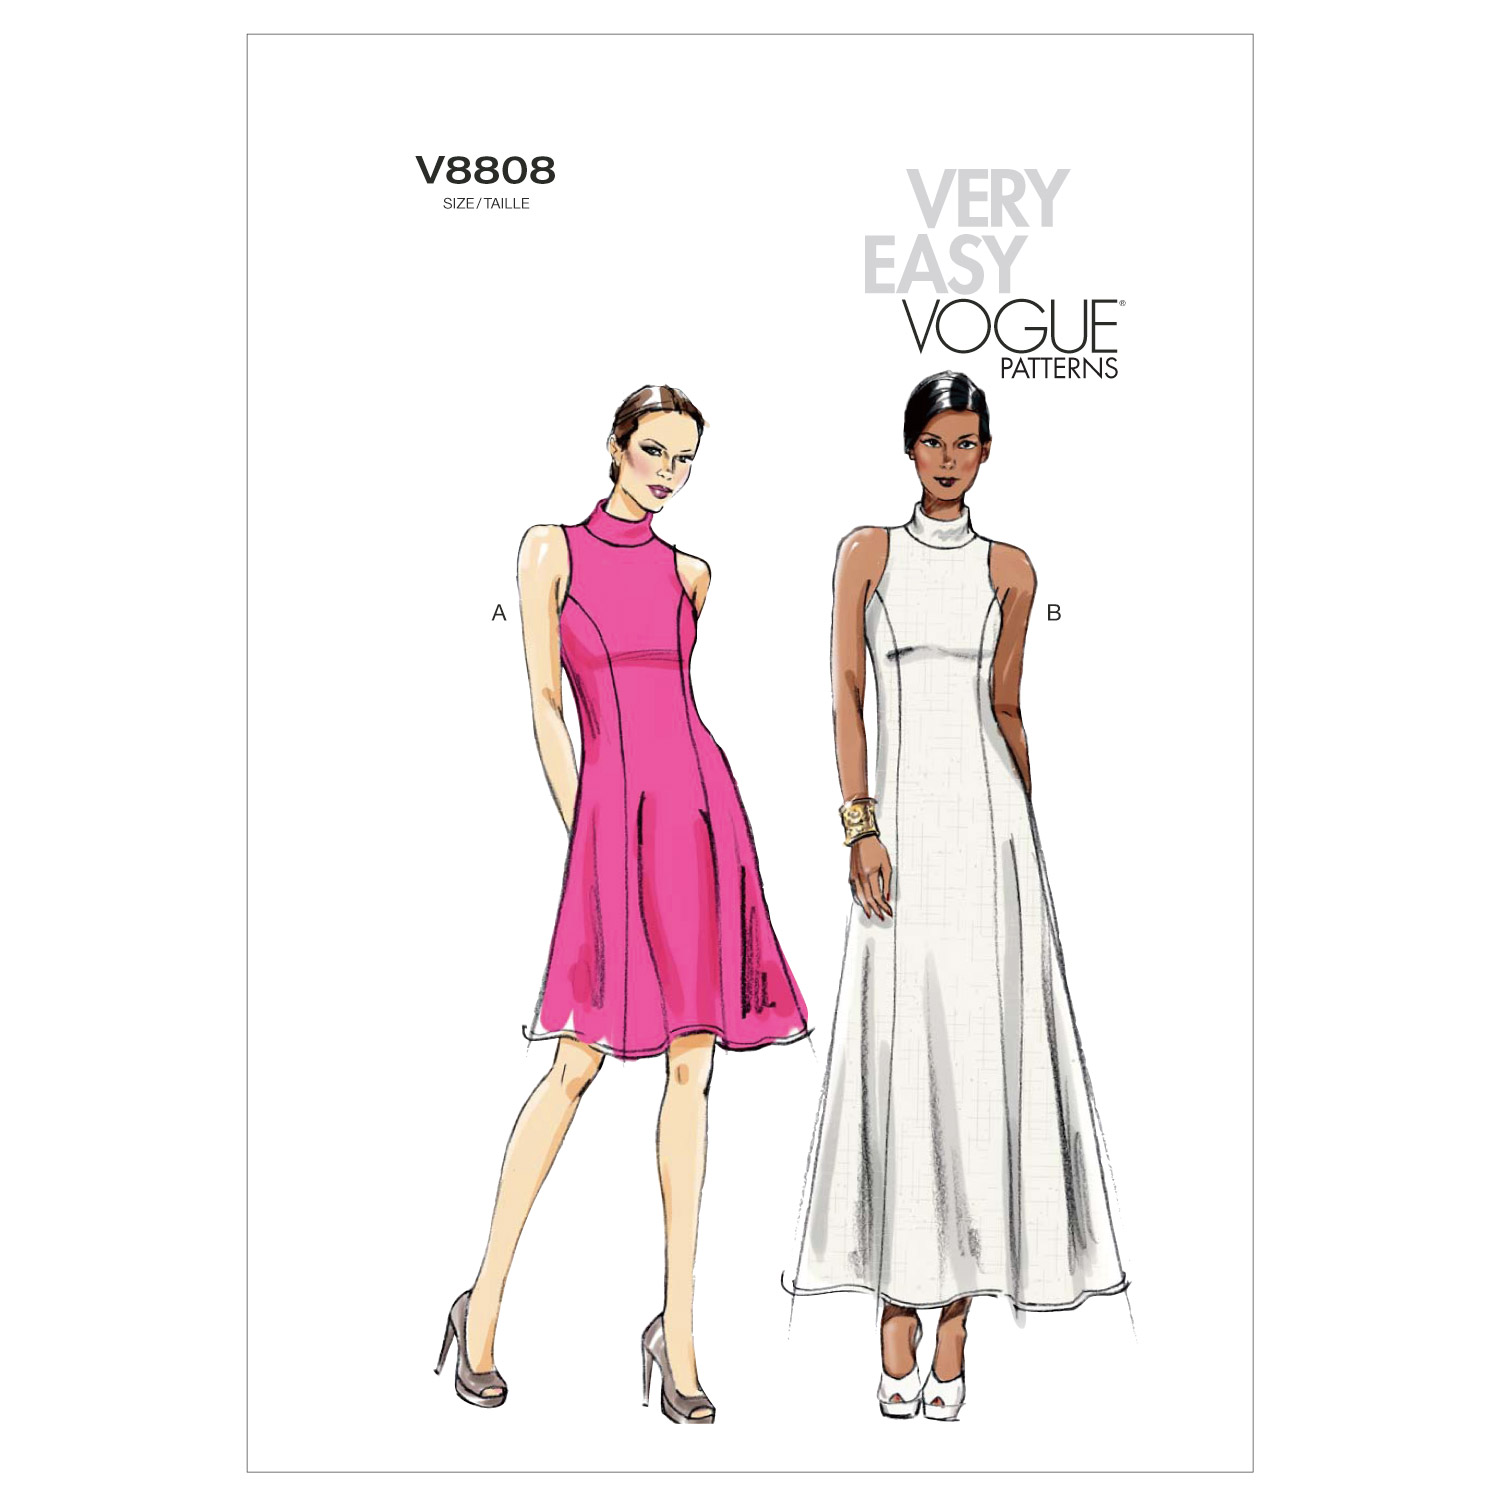 Vogue Patterns Misses Dress-V8808